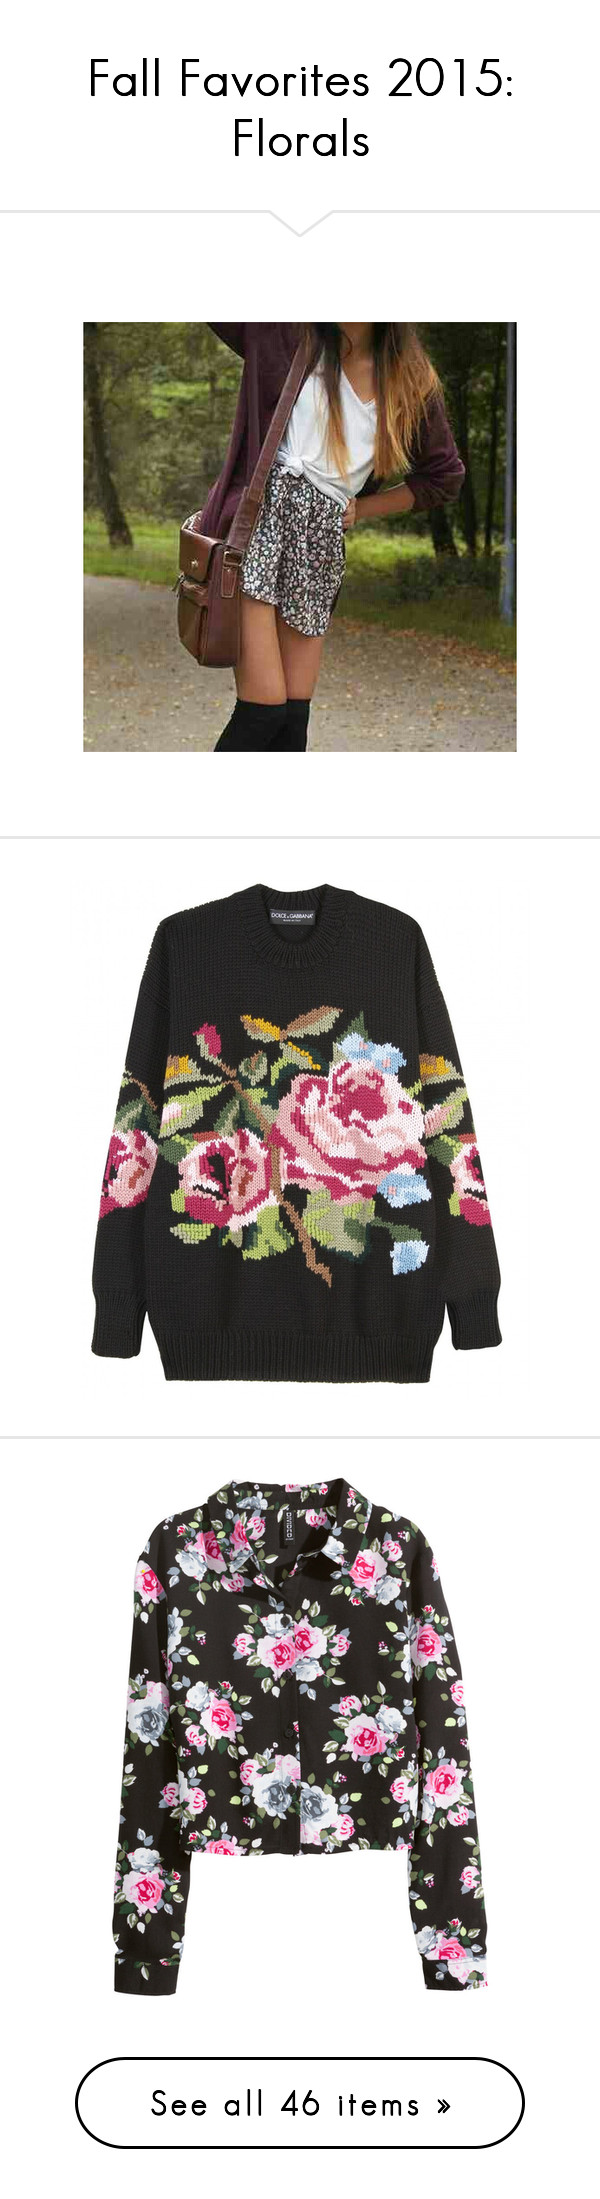 """Fall Favorites 2015: Florals"" by skylarinc ❤ liked on Polyvore featuring tops, sweaters, jumpers, shirts, ricamati, knit pullover, embroidery shirts, dolce gabbana shirt, sweater pullover and knit tops"